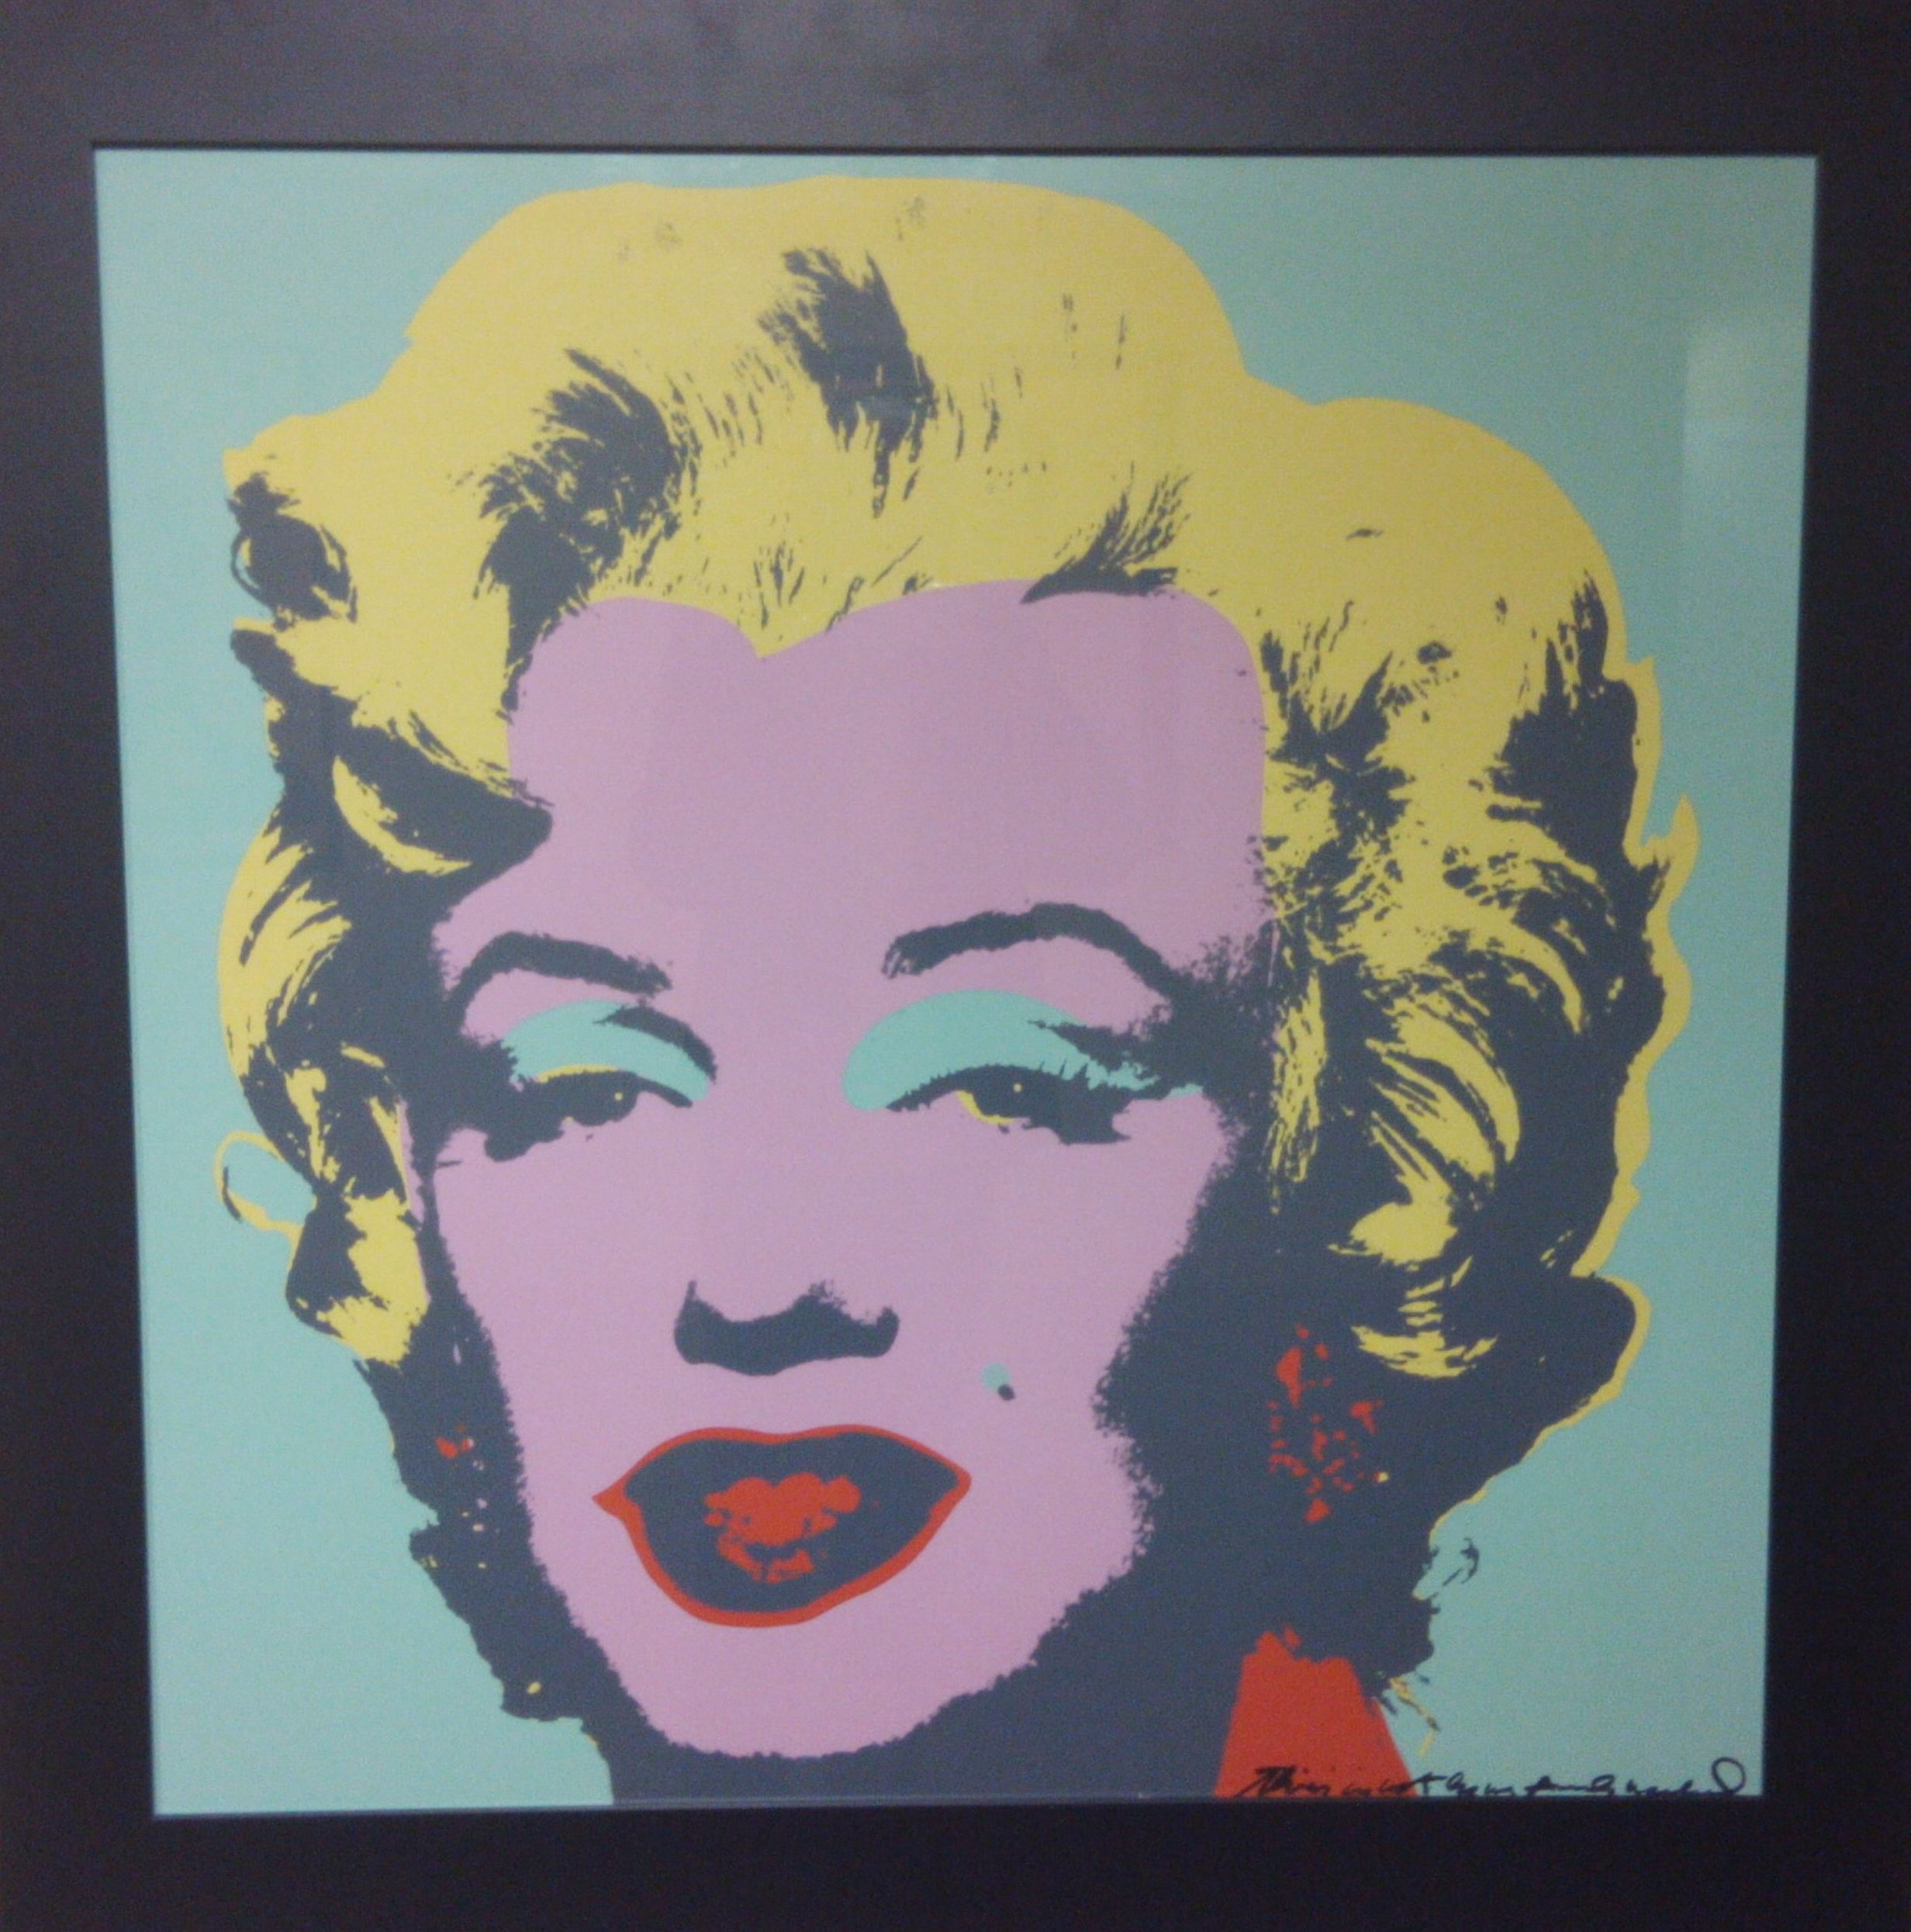 American art comes to brindisi andy warhol puglian for Andy warhol famous works